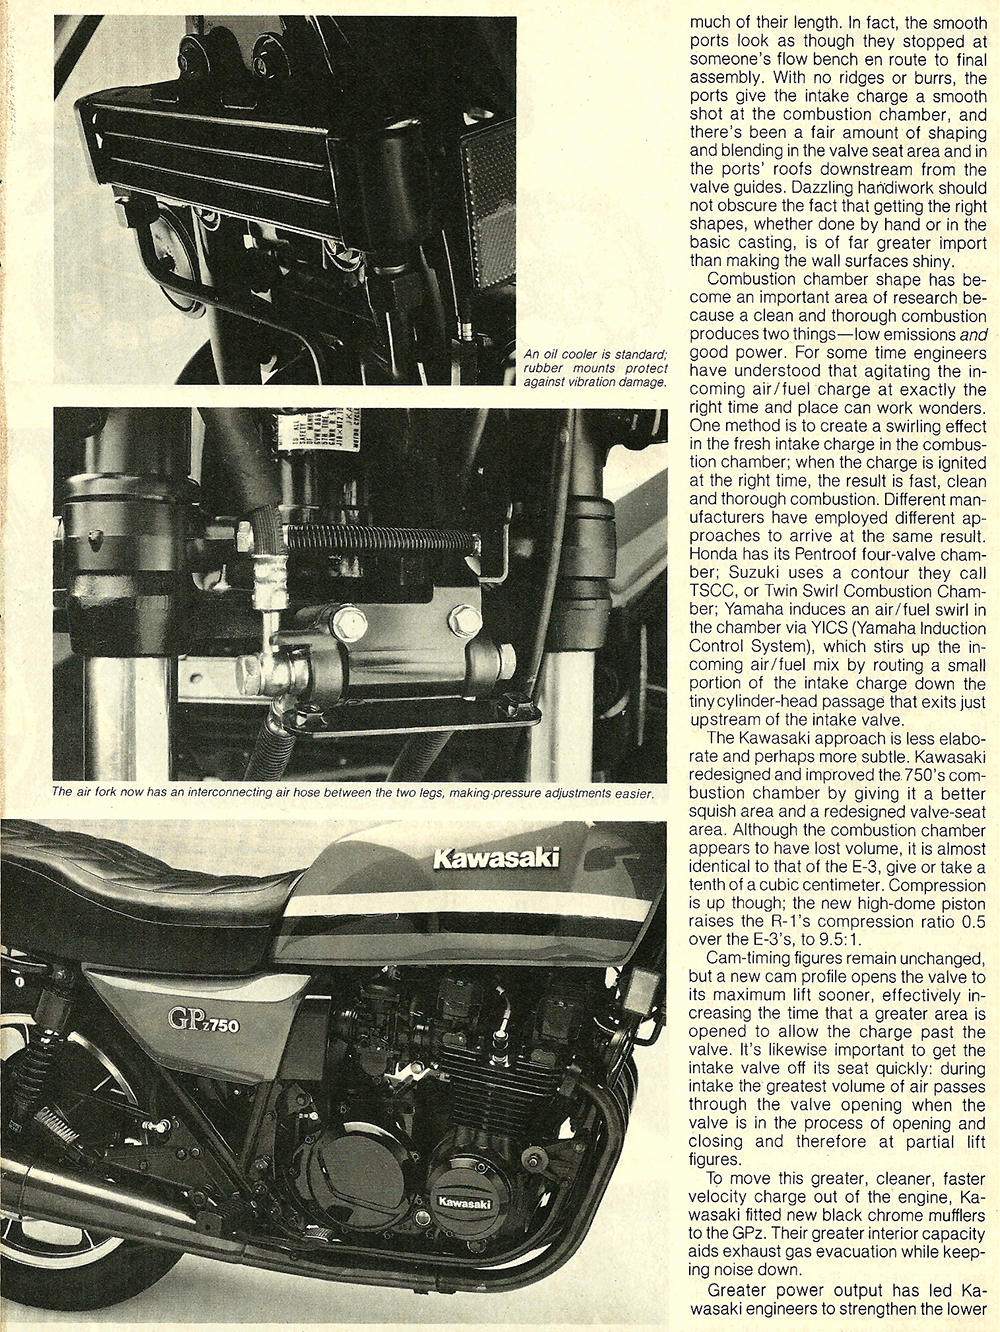 1982 Kawasaki Gpz750 road test 04.jpg